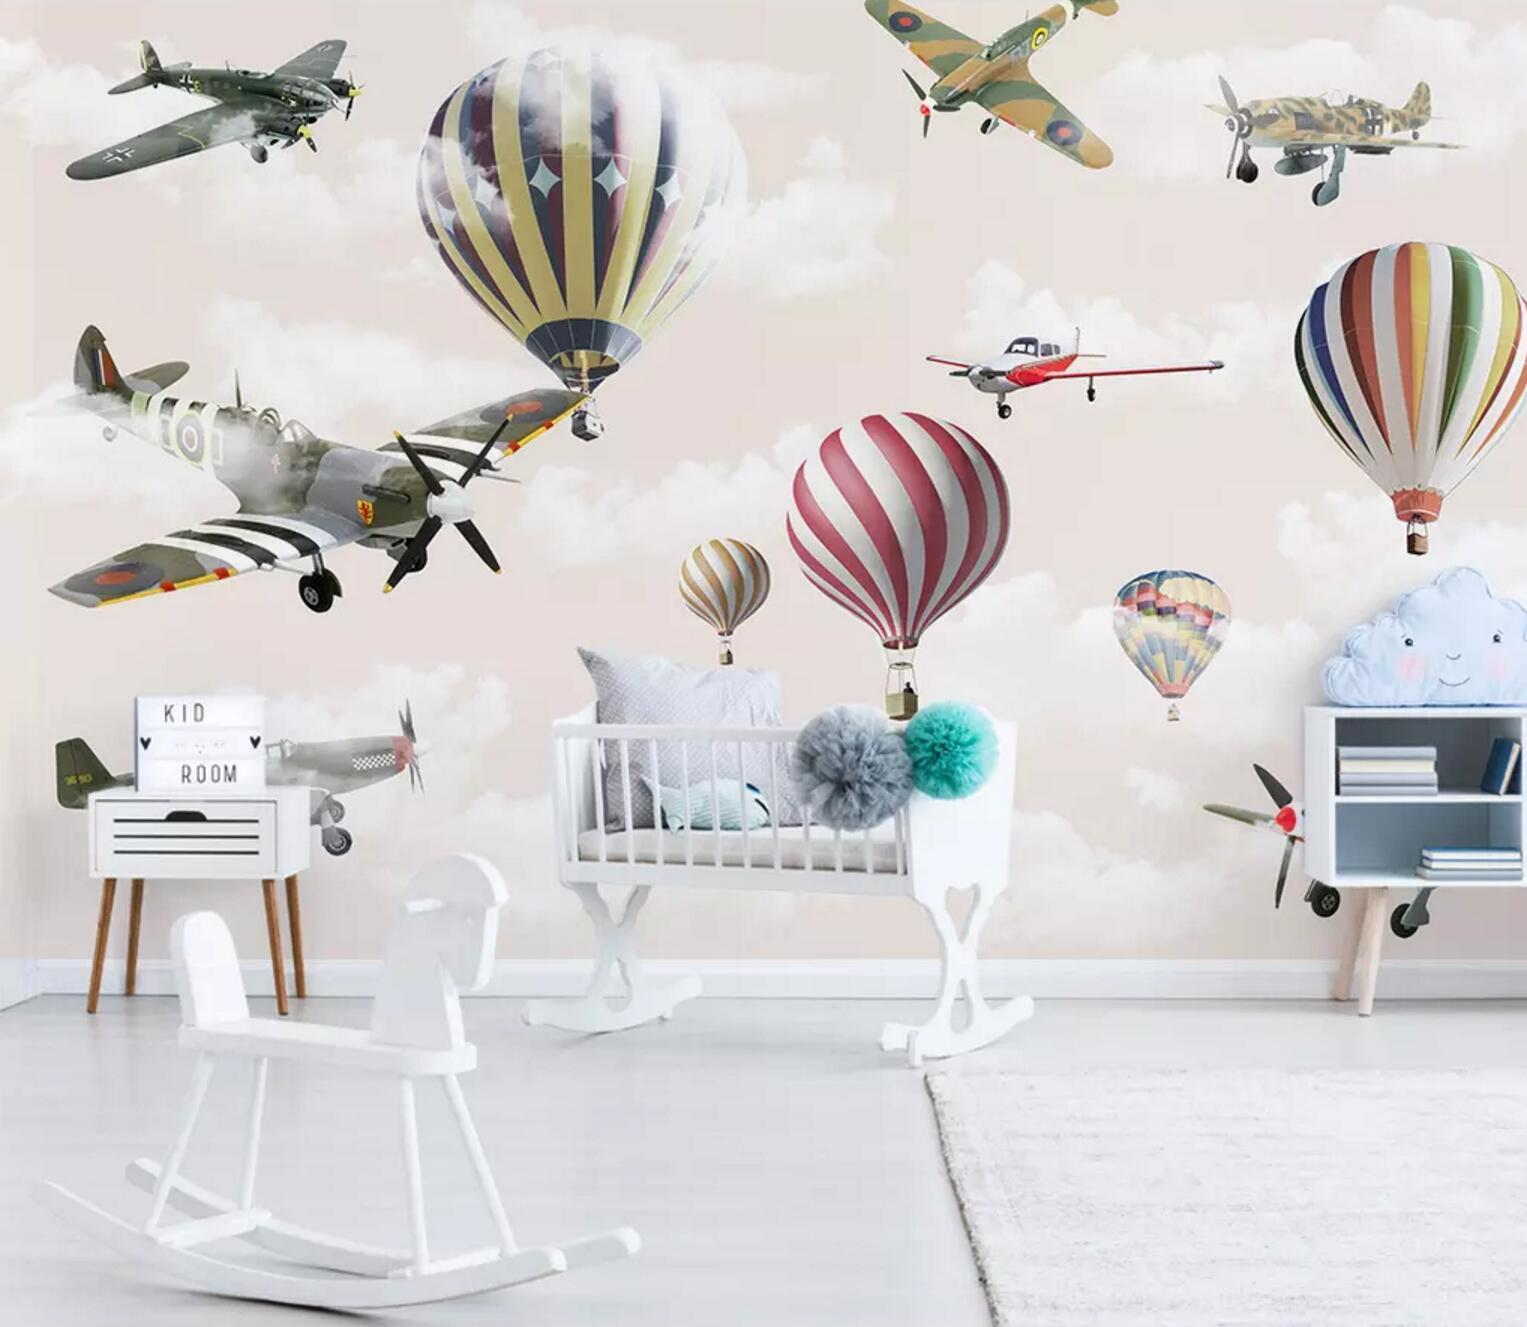 3D Airplane Balloon 8 Wall Paper Exclusive MXY Wallpaper Mural Decal Indoor Wall